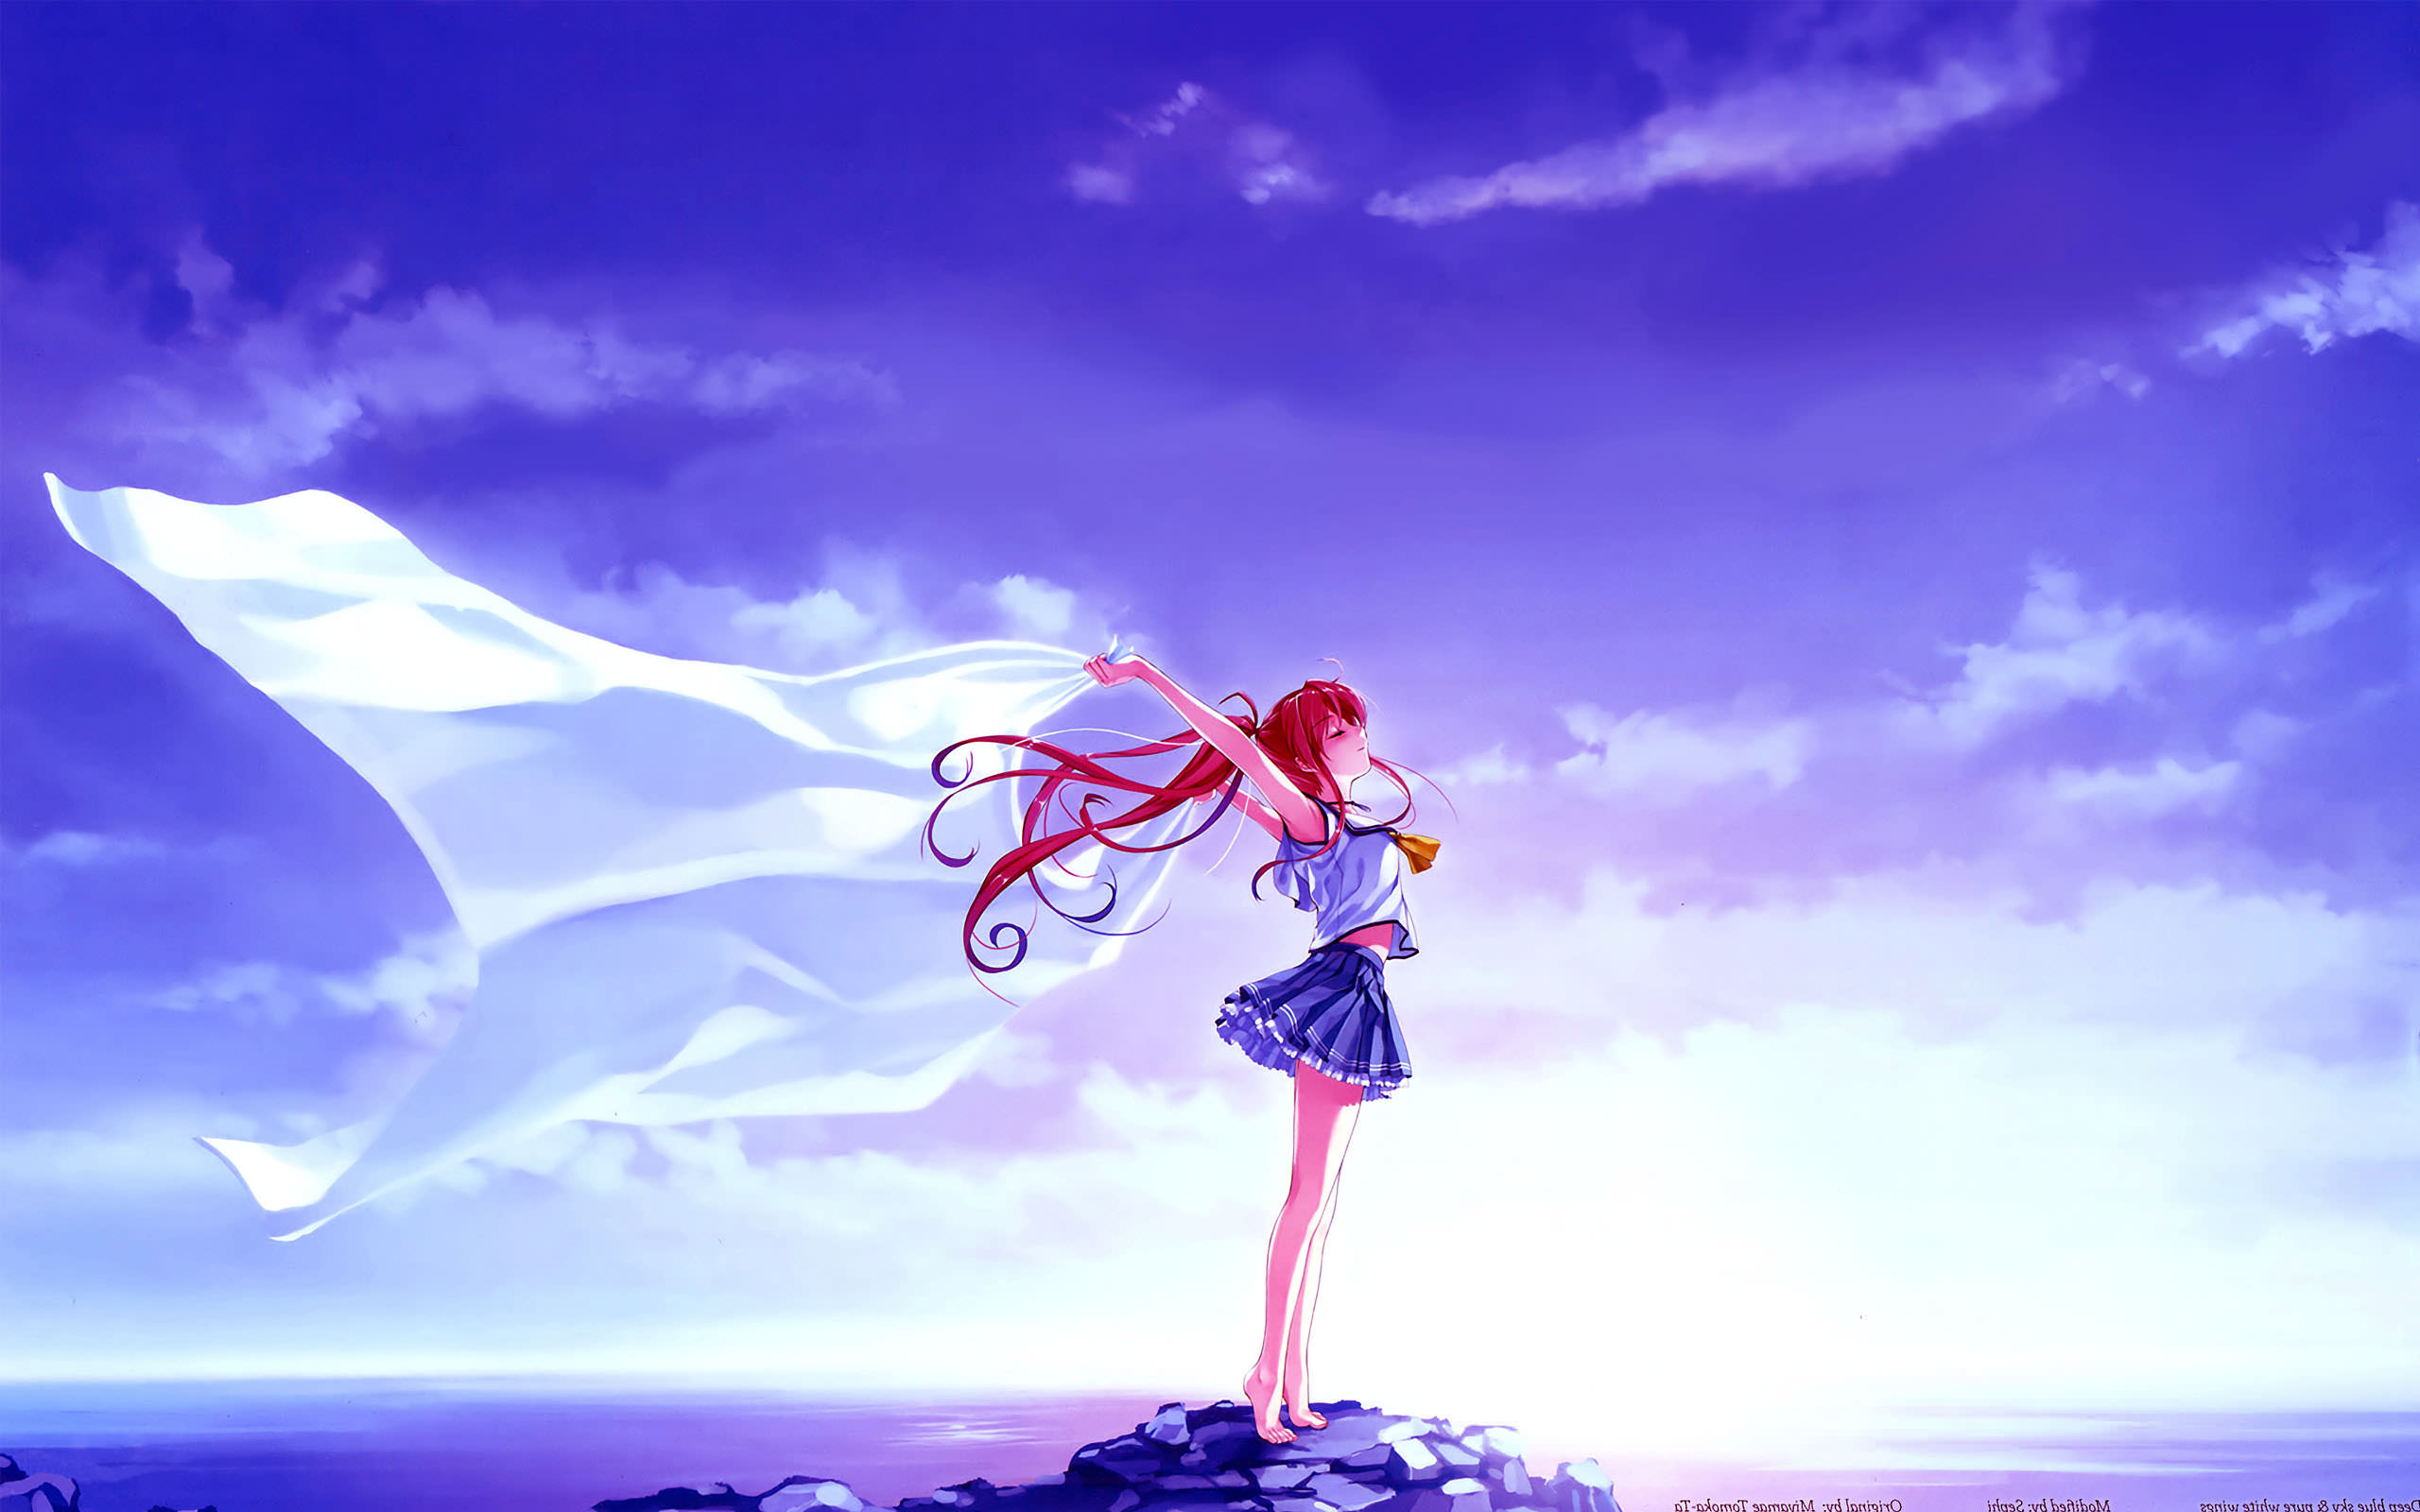 Alone Cartoon Girl 46+ beautiful anime wallpapers in high-resolution - templatefor